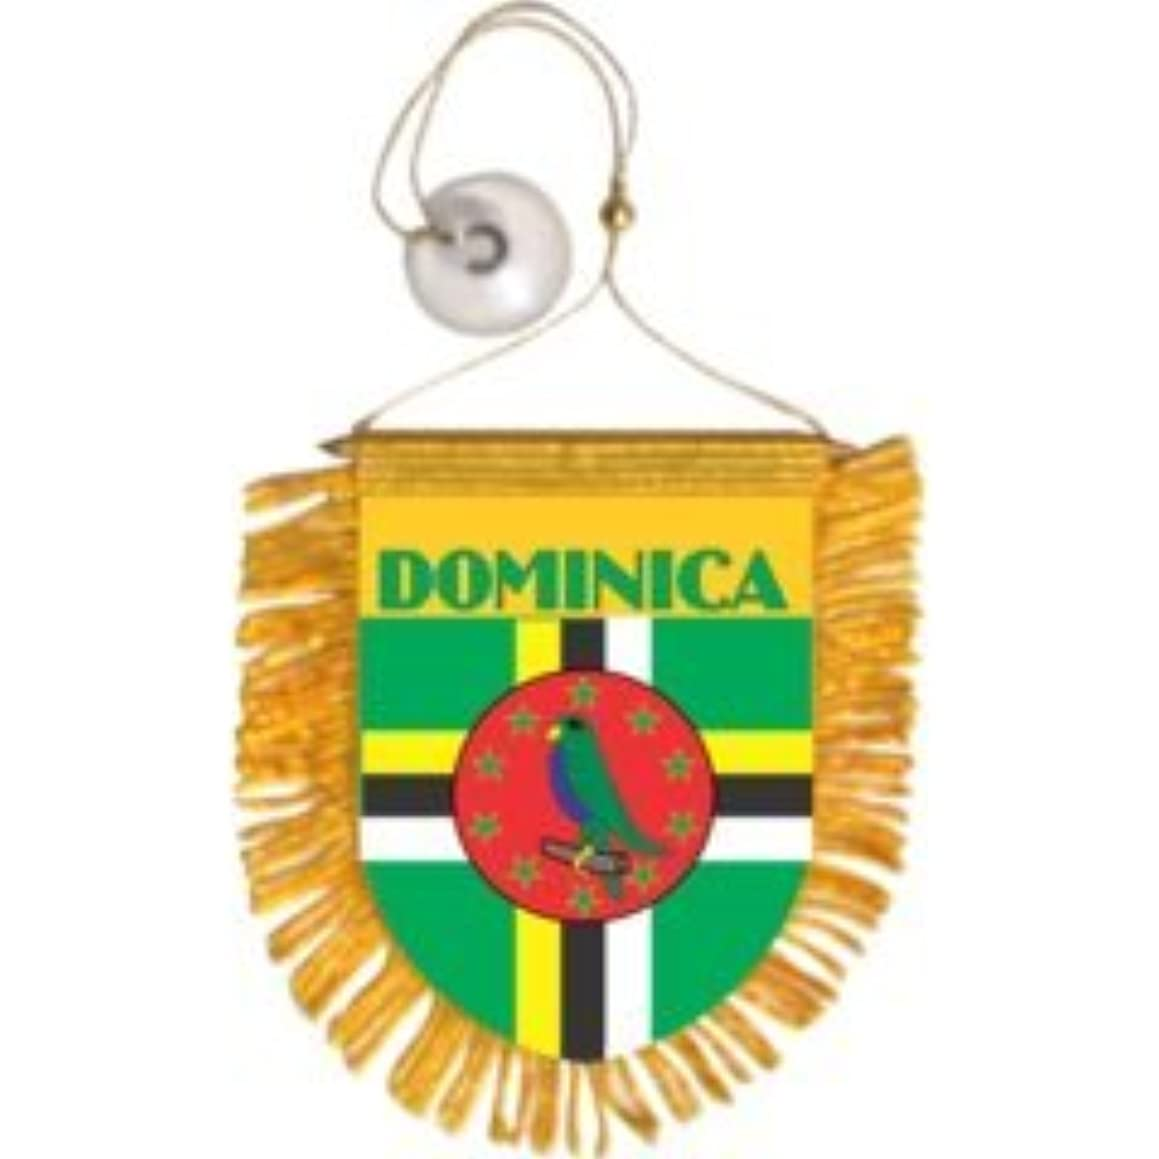 Dominica Car Auto Mini Banners